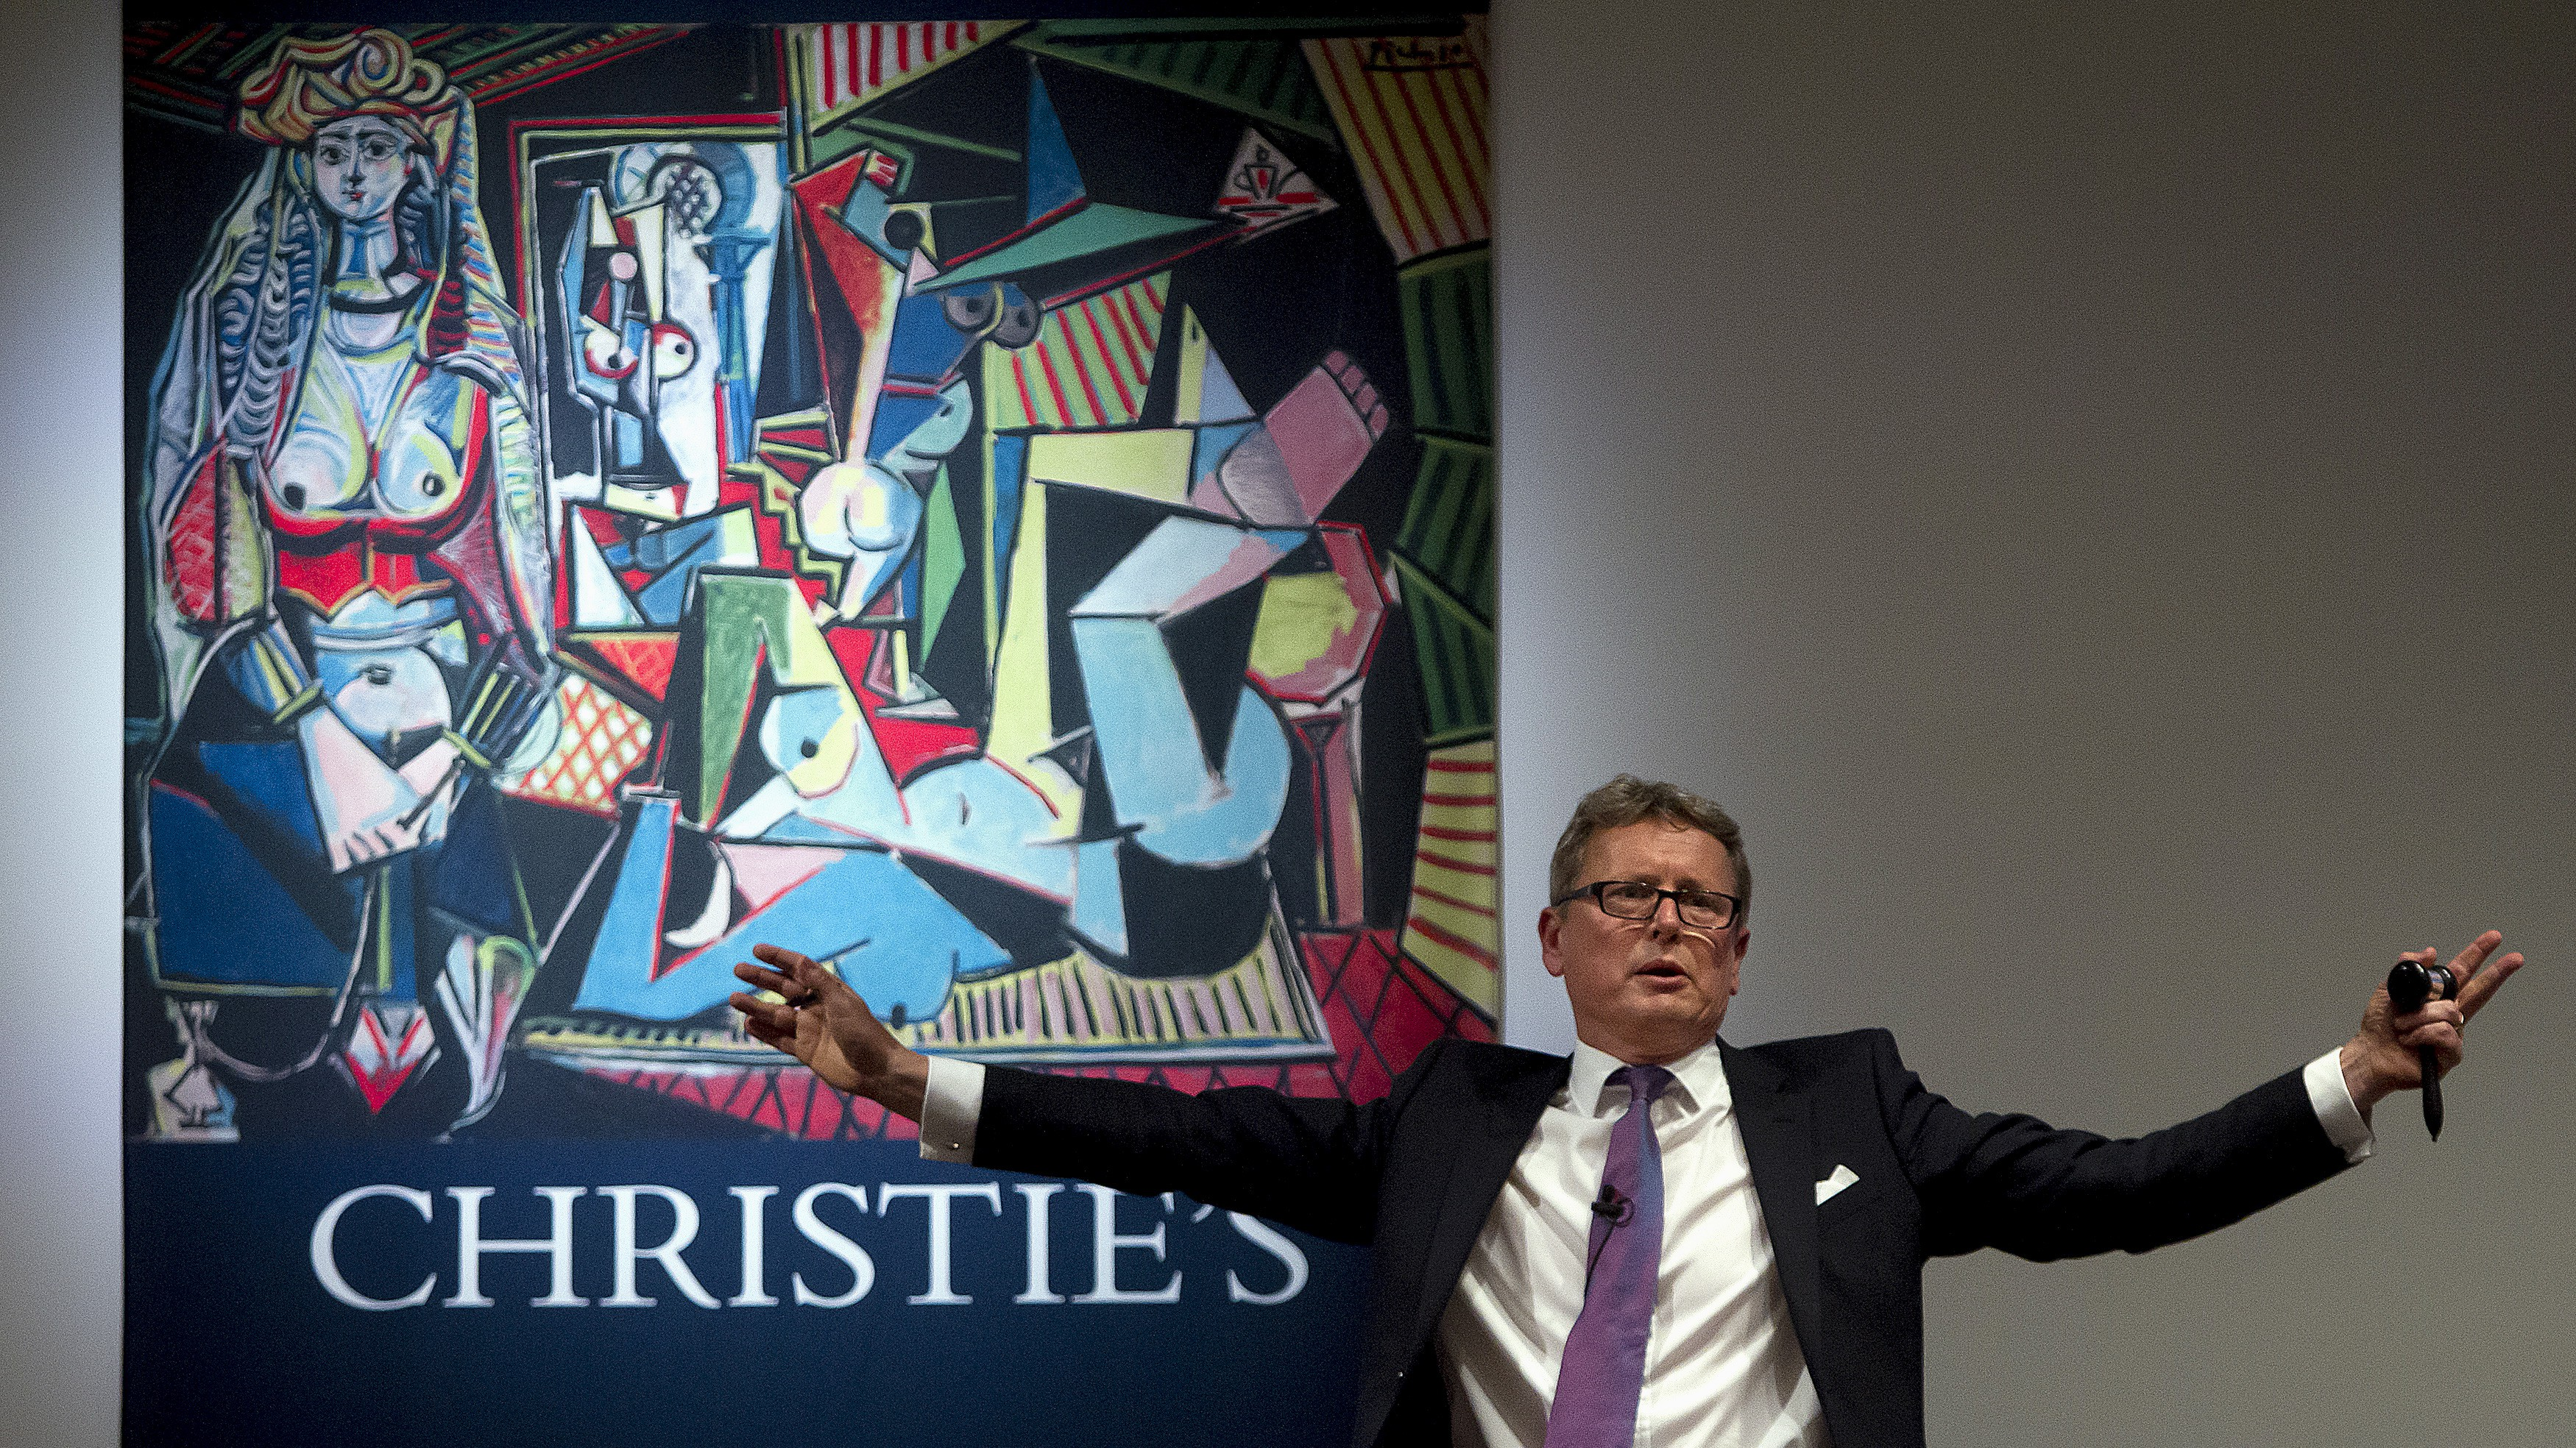 "Auctioneer Jussi Pylkkanen calls for final bids before dropping the gavel as he sells Pablo Picasso's ""Les femmes d'Alger (Version 'O')"" (Women of Algiers) at Christie's Auction House in the Manhattan borough of New York May 11, 2015. The auction house had estimated the 1955 cubist oil ""Les femmes d'Alger (Version ""O"")"" would sell for about $140 million, but several bidders competing via telephone drove the winning bid to $160 million, for a final price of $179,365,000 including Christie's commission of just over 12 percent. REUTERS/Carlo Allegri      TPX IMAGES OF THE DAY      - RTX1CIKY"